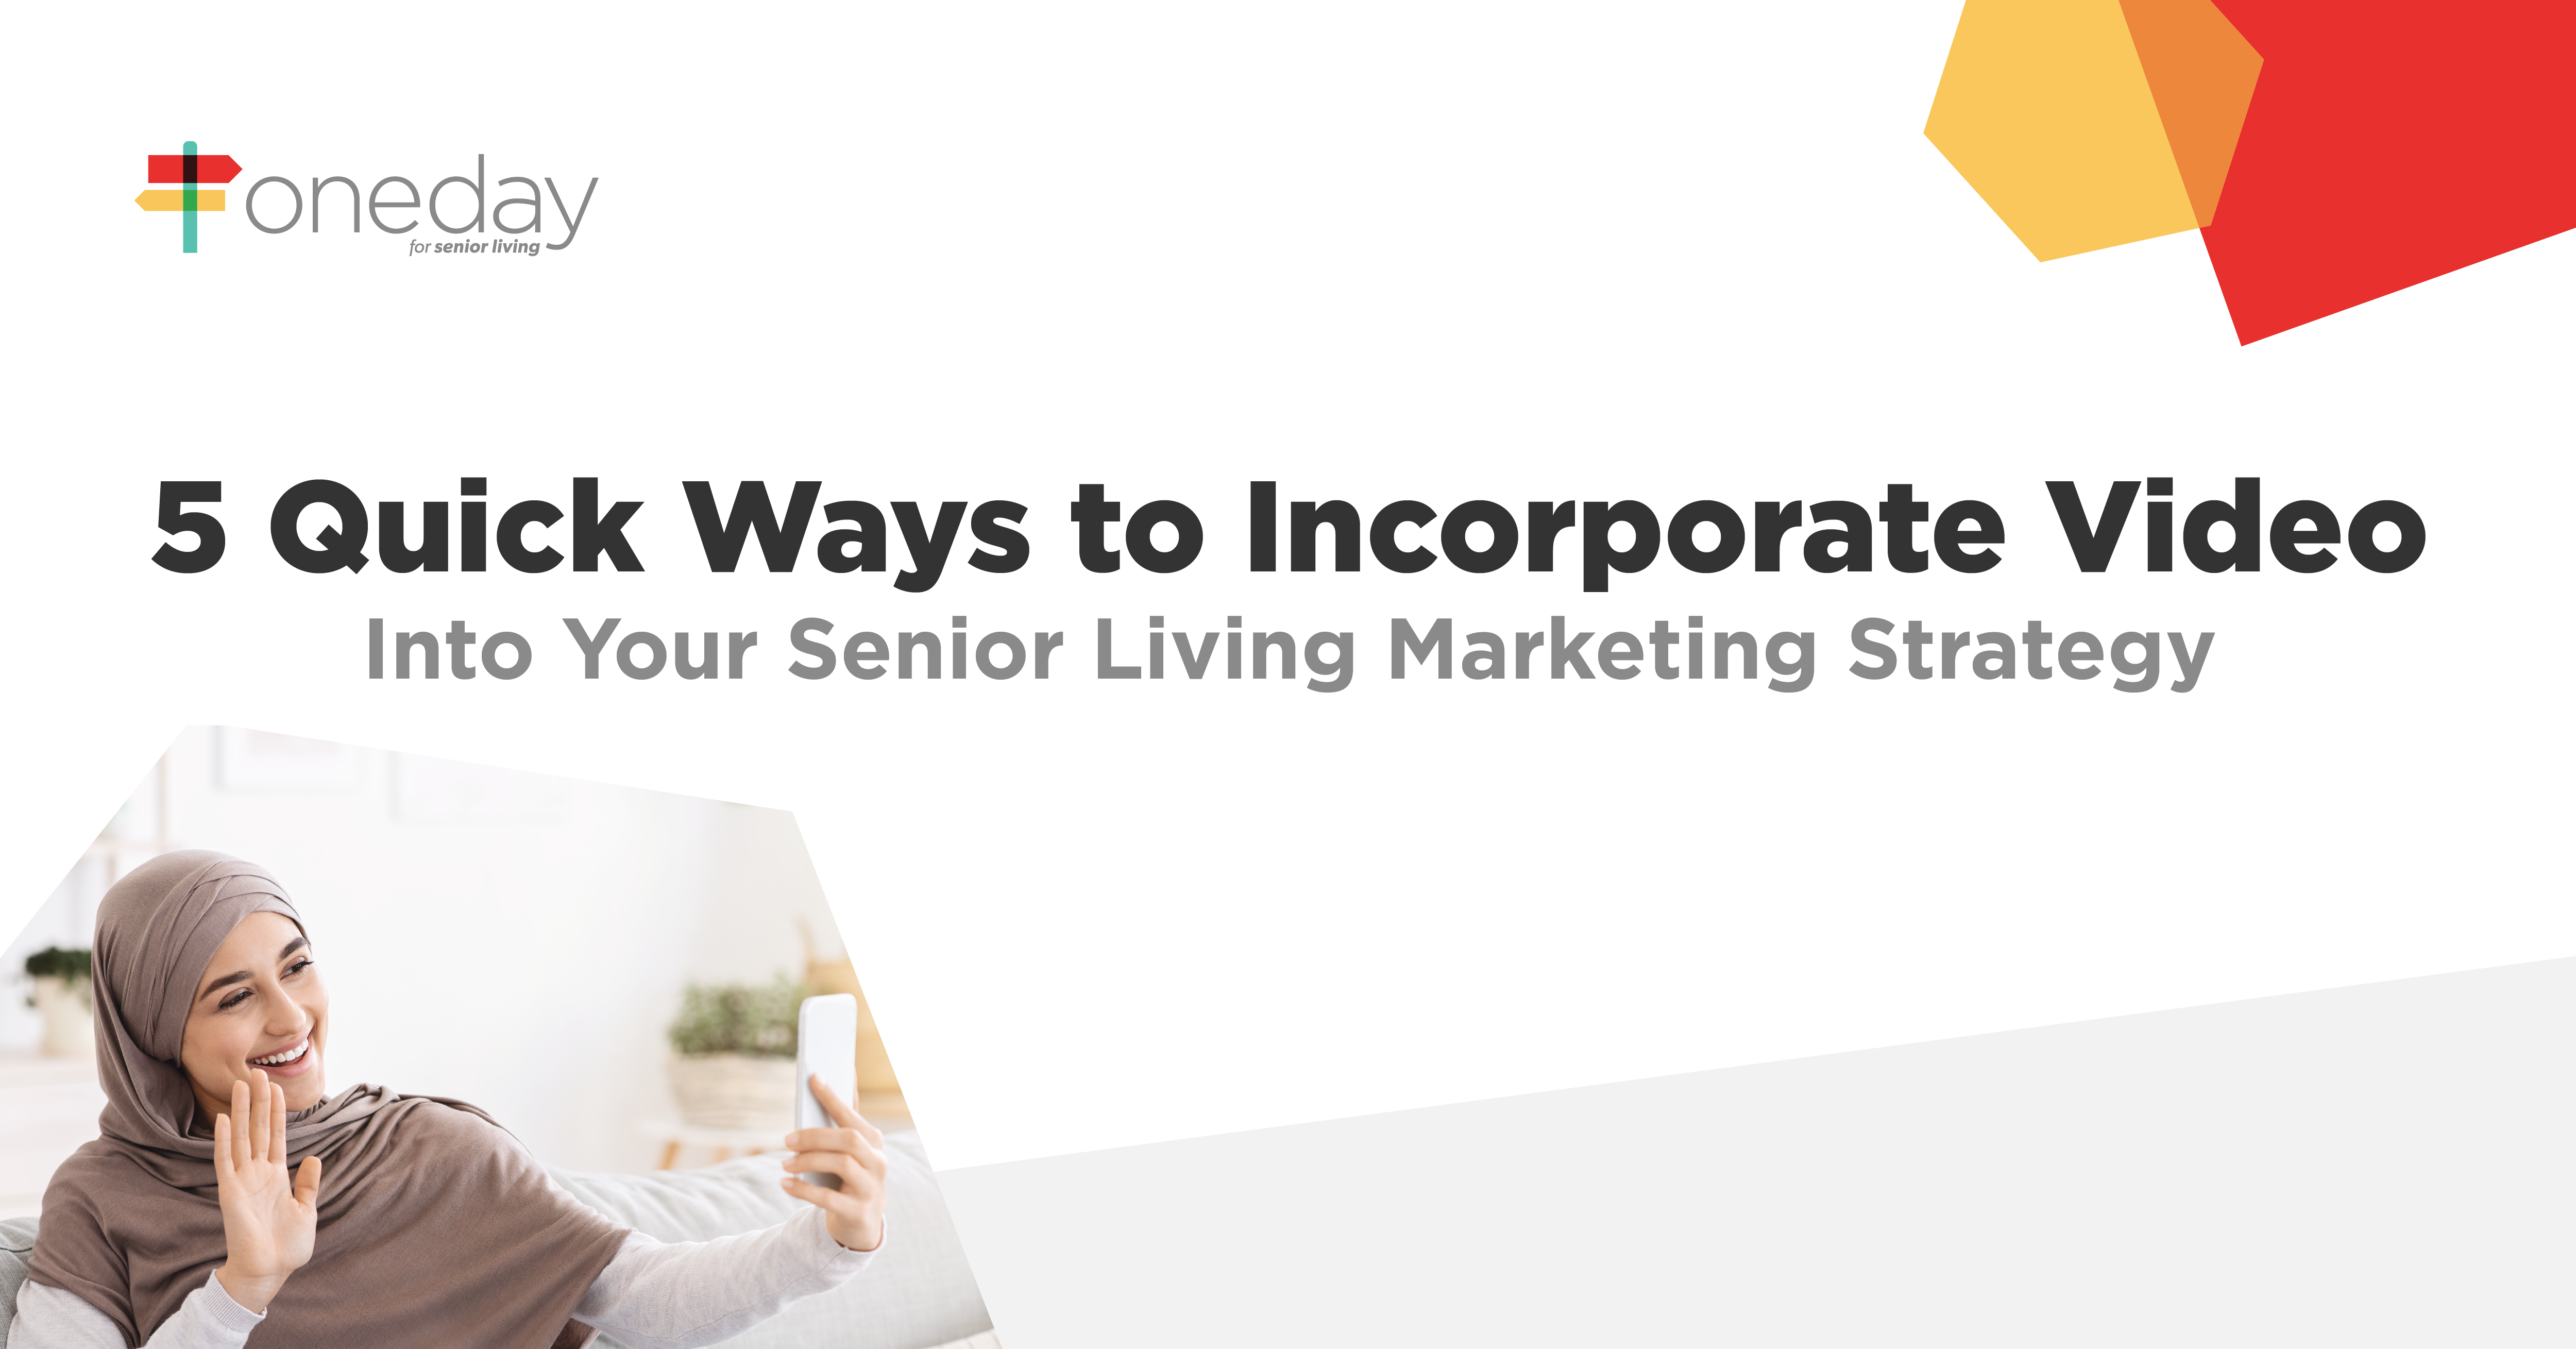 Simple but powerful ways your senior living community's marketing team can integrate personalized videos into your marketing strategy to drive more move-ins.